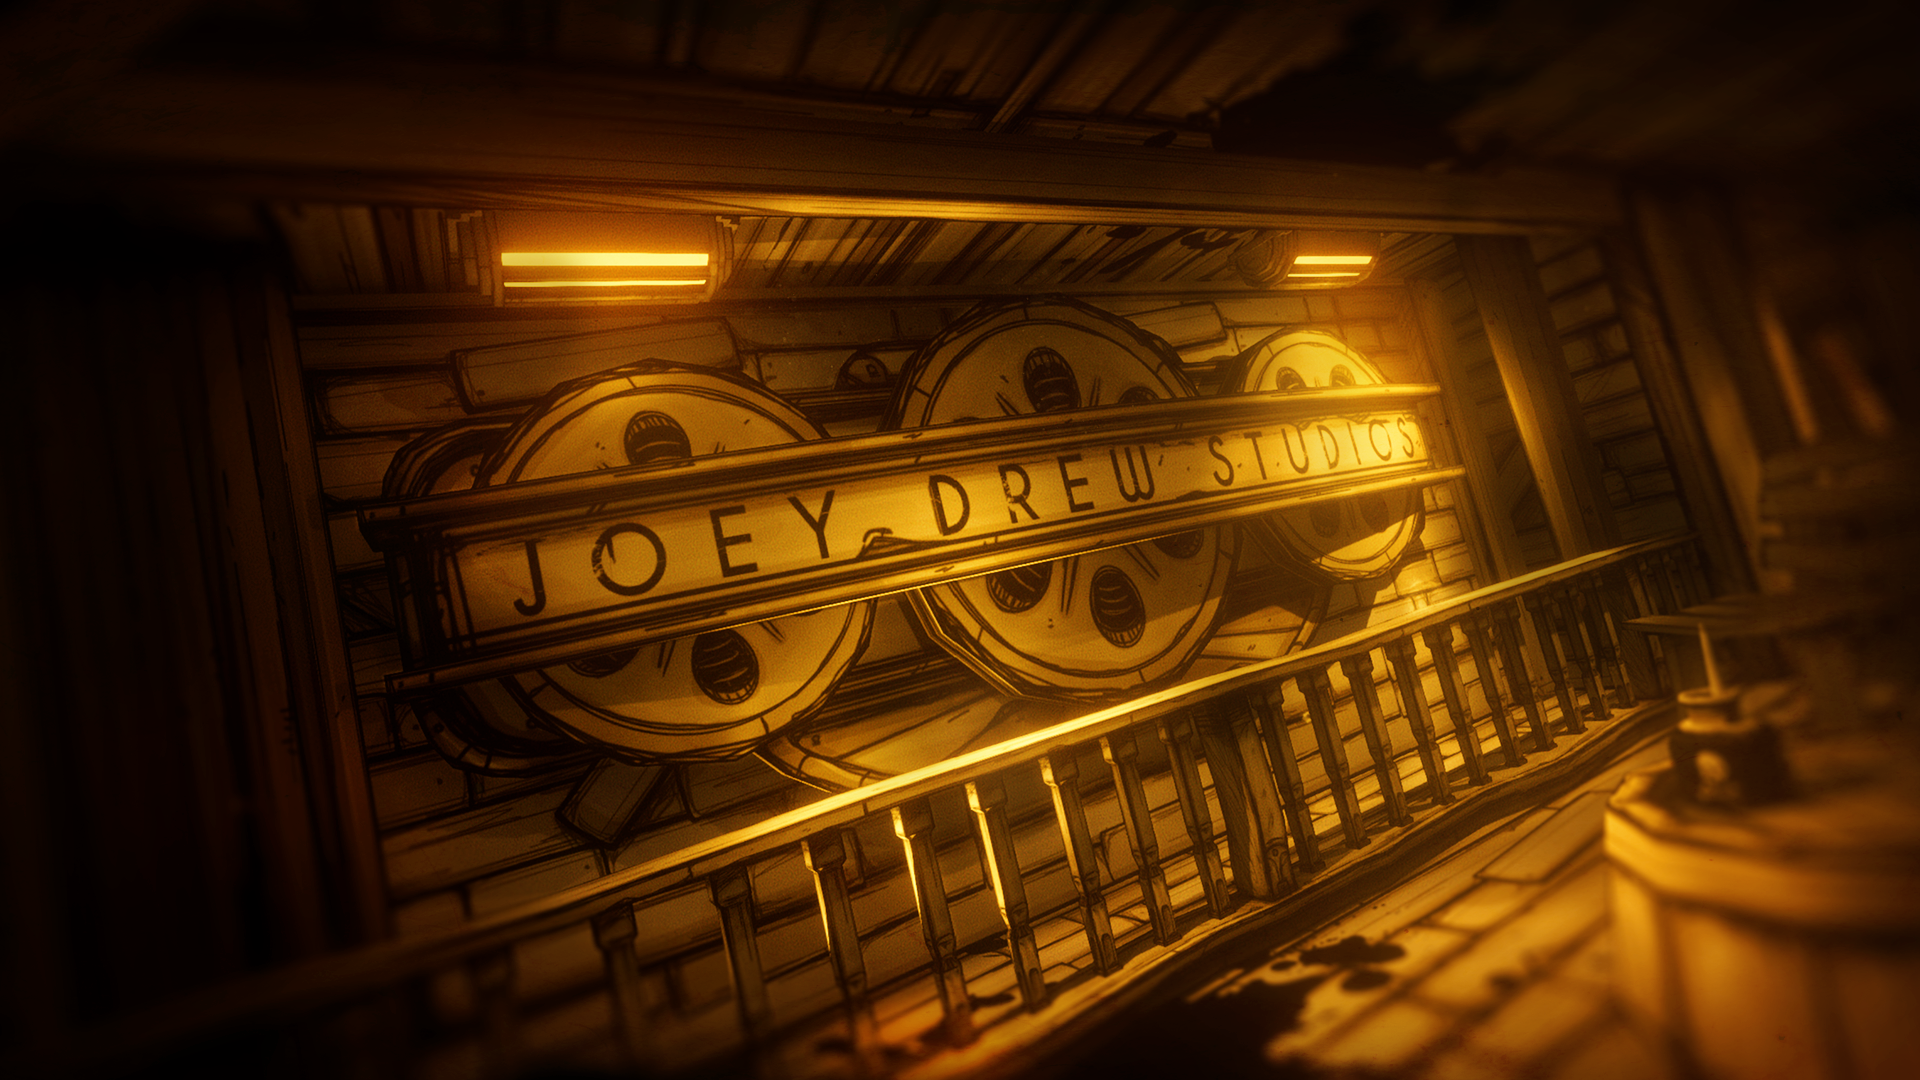 Bendy and the Ink Machine: Complete Edition by Joey Drew Studios